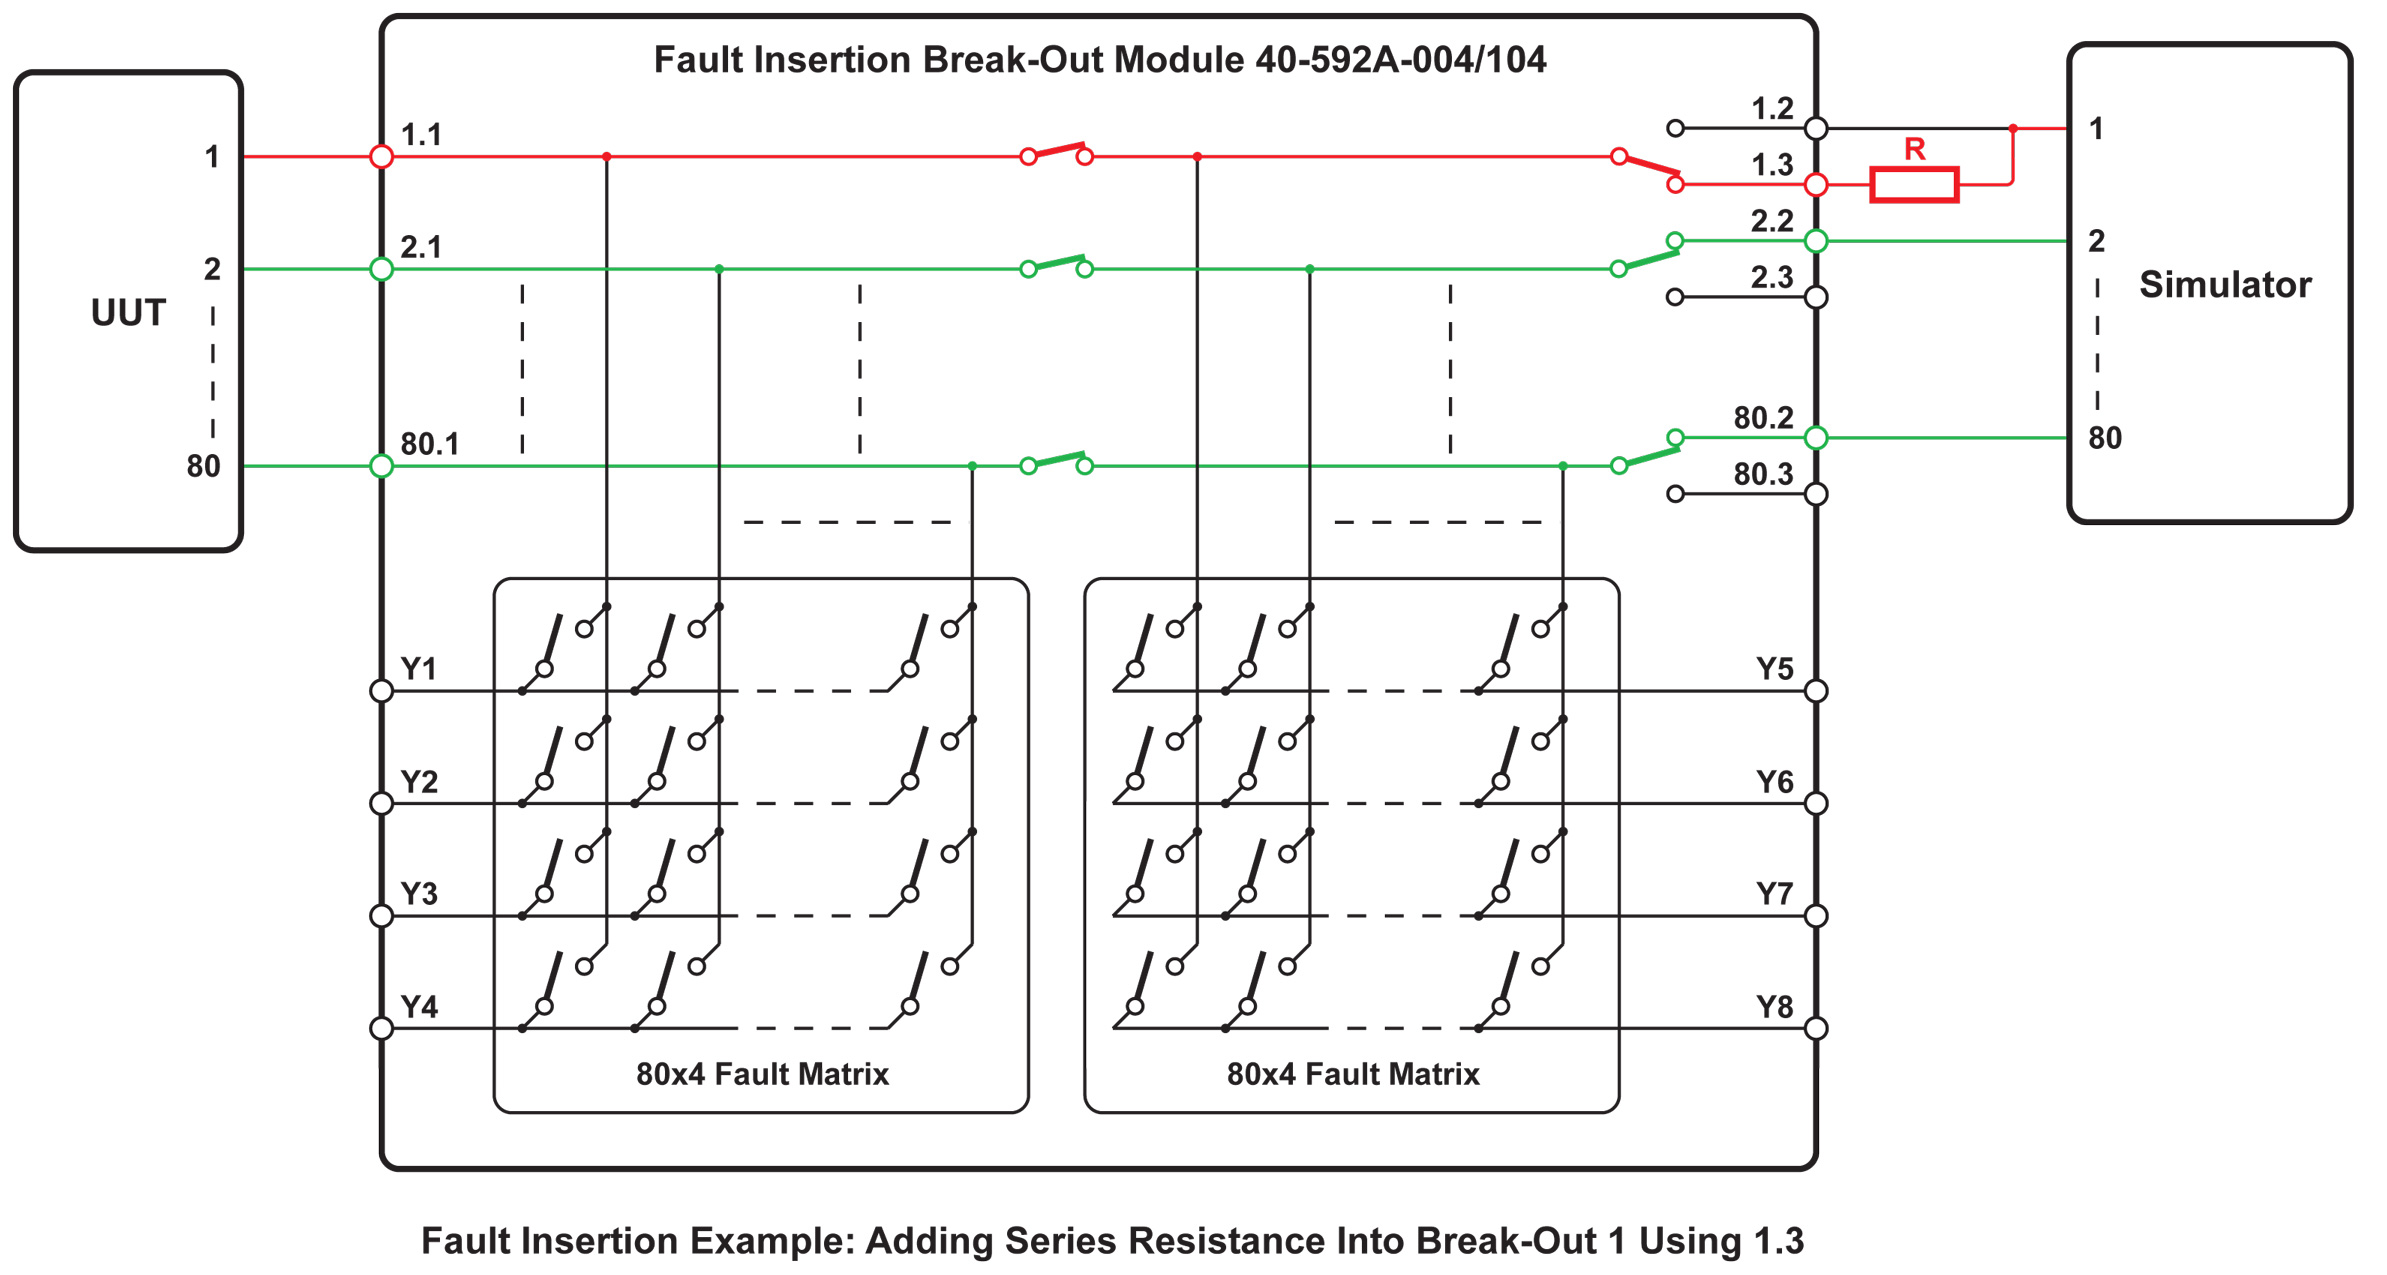 Fault insertion example - adding series resistance into break-out1